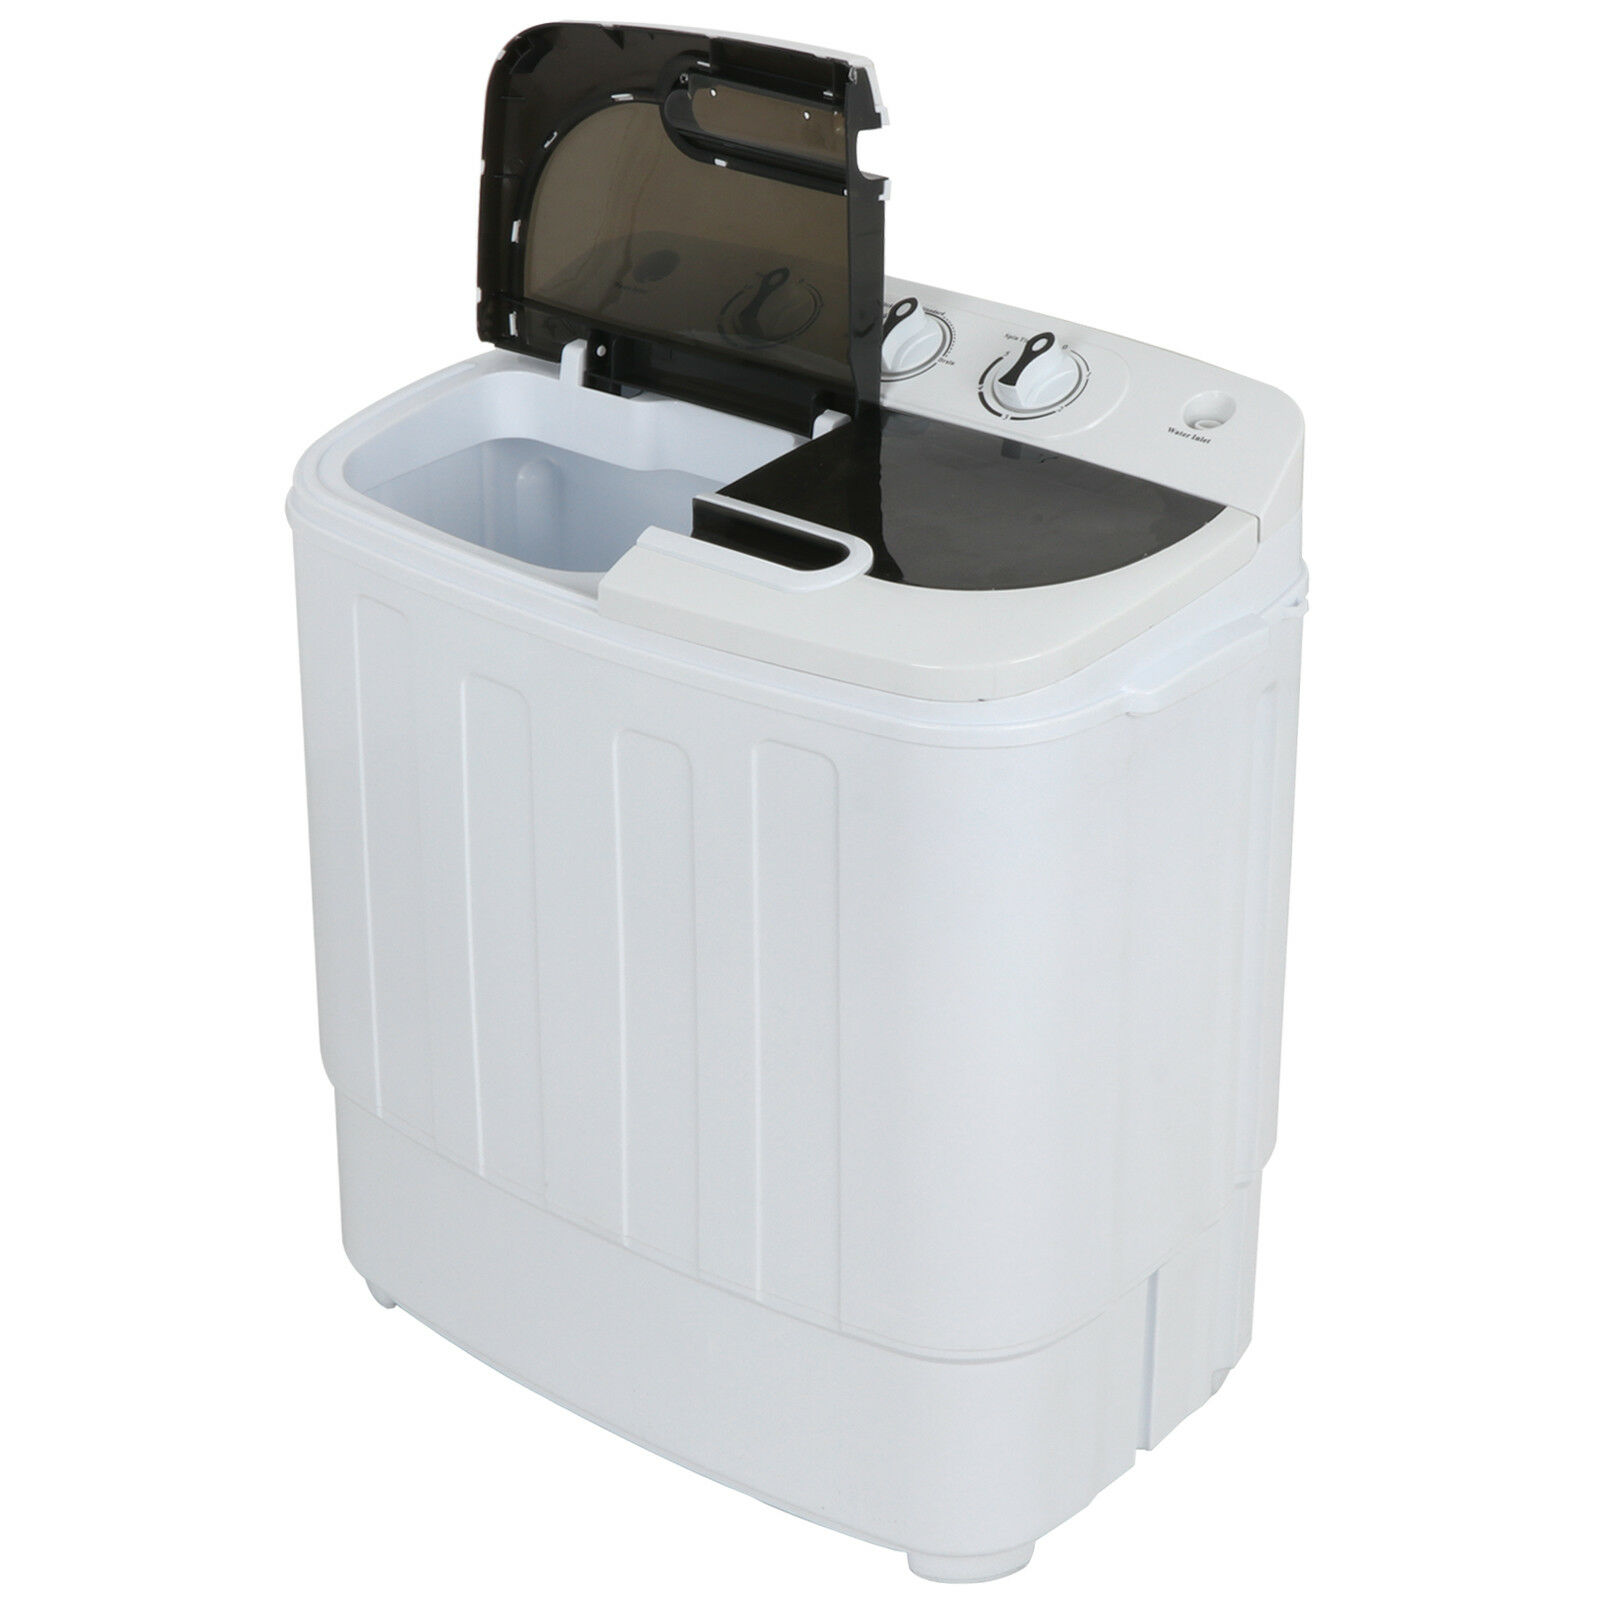 Compact Twin Tub Washing Machine Fast Dryer & Efficient Spin